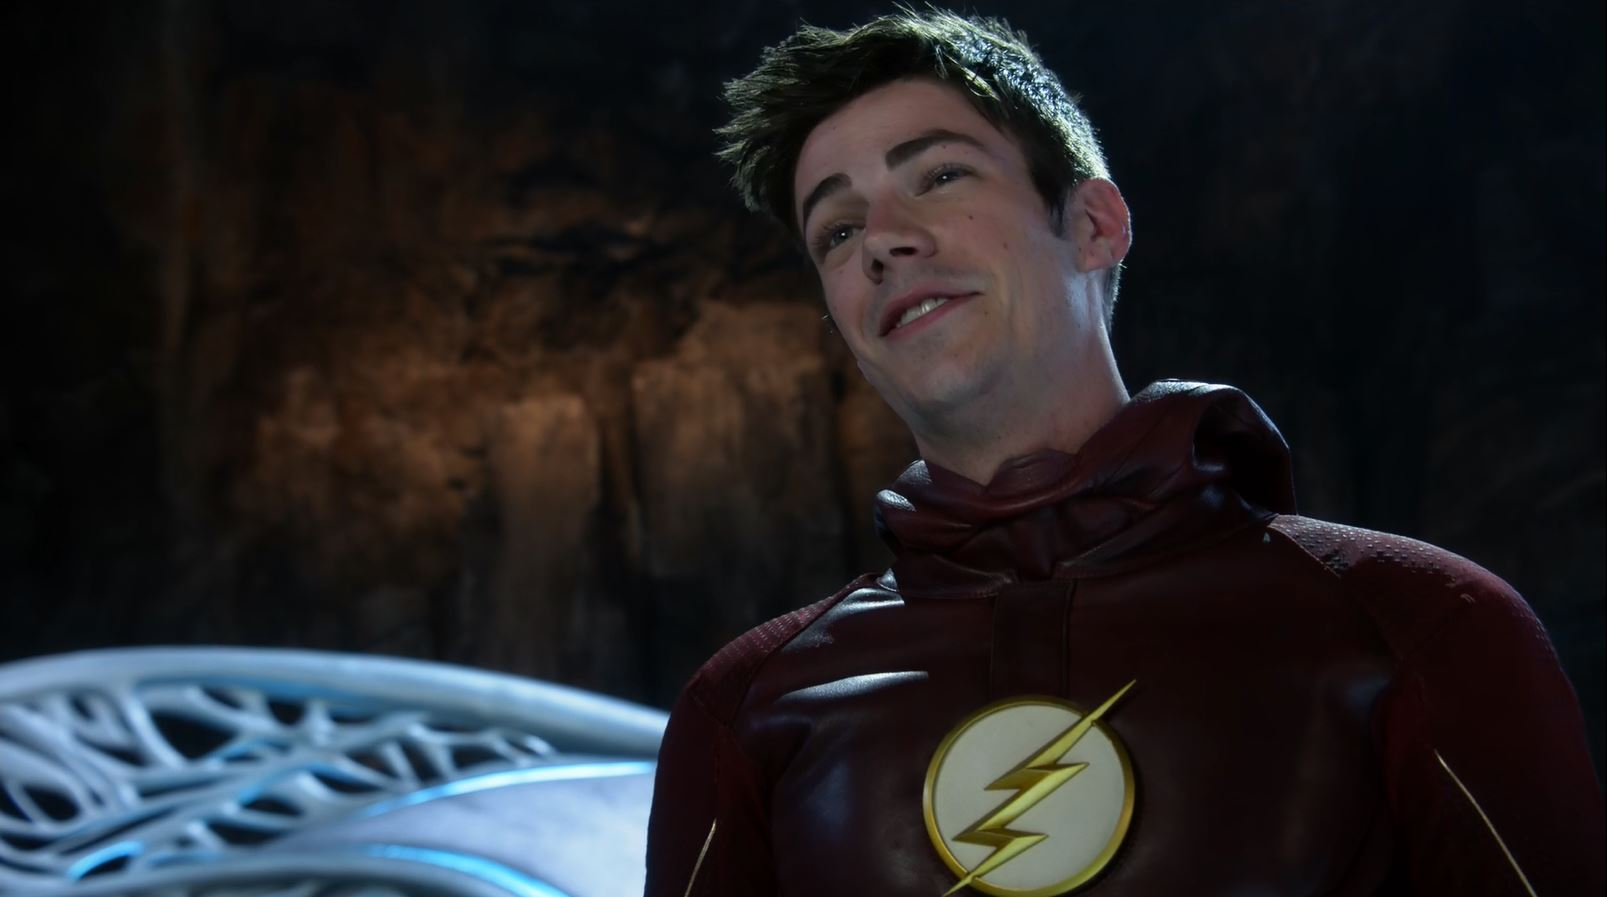 Grant Gustin as The Flash on Supergirl